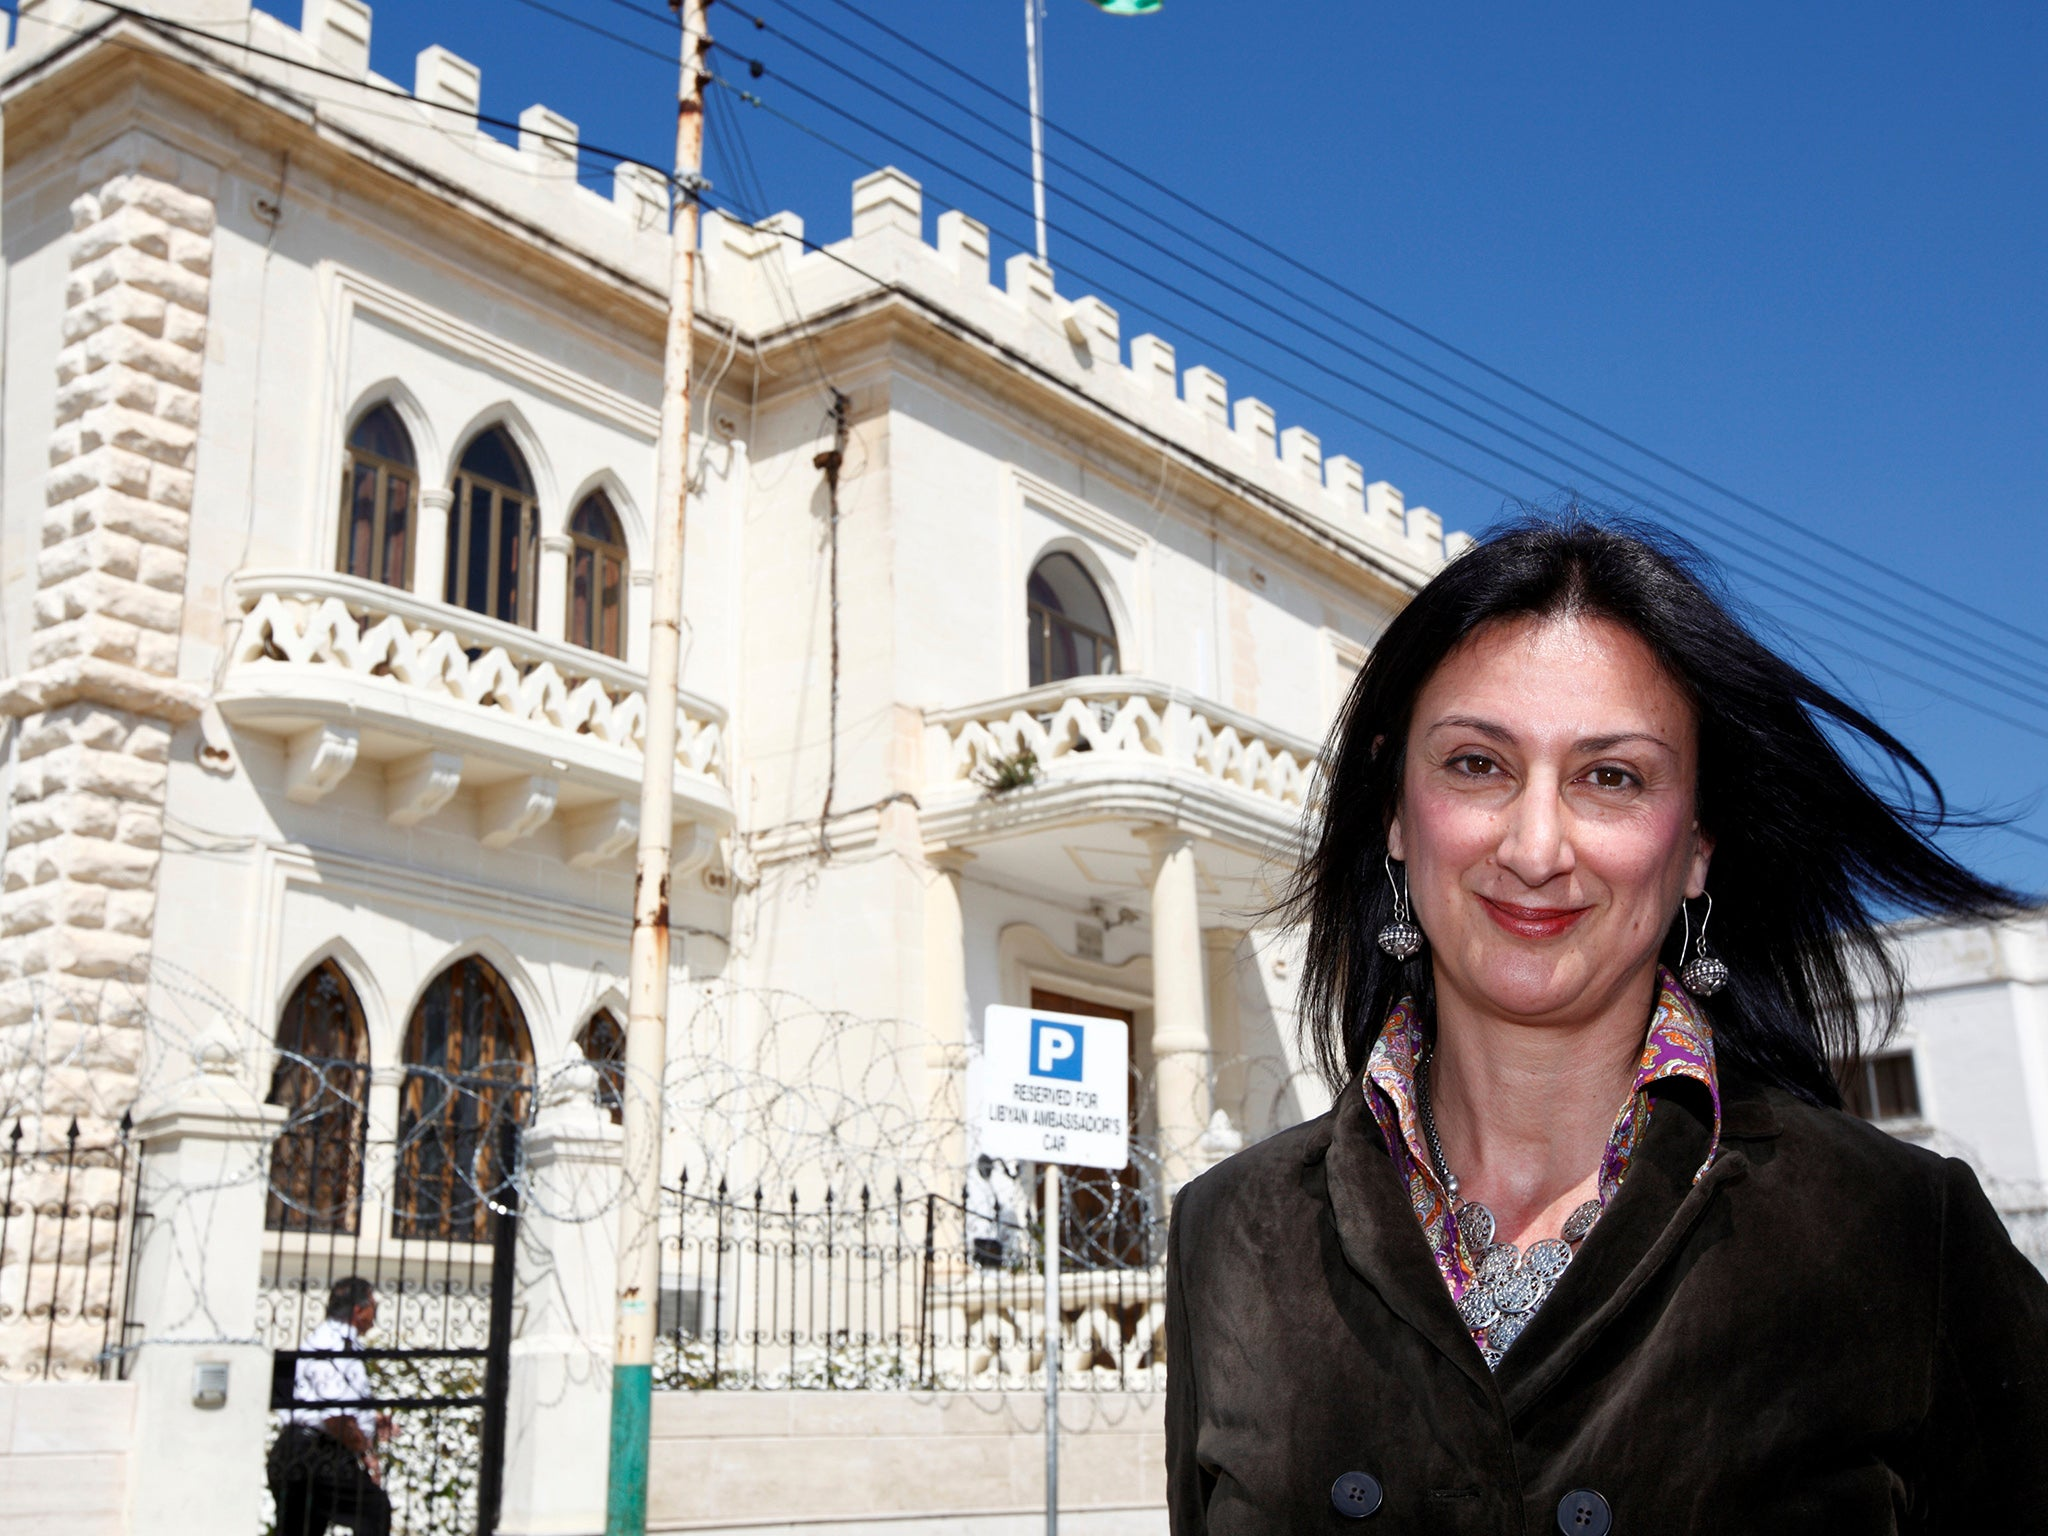 'One-woman Wikileaks' who worked on Panama Papers killed by car bomb in Malta